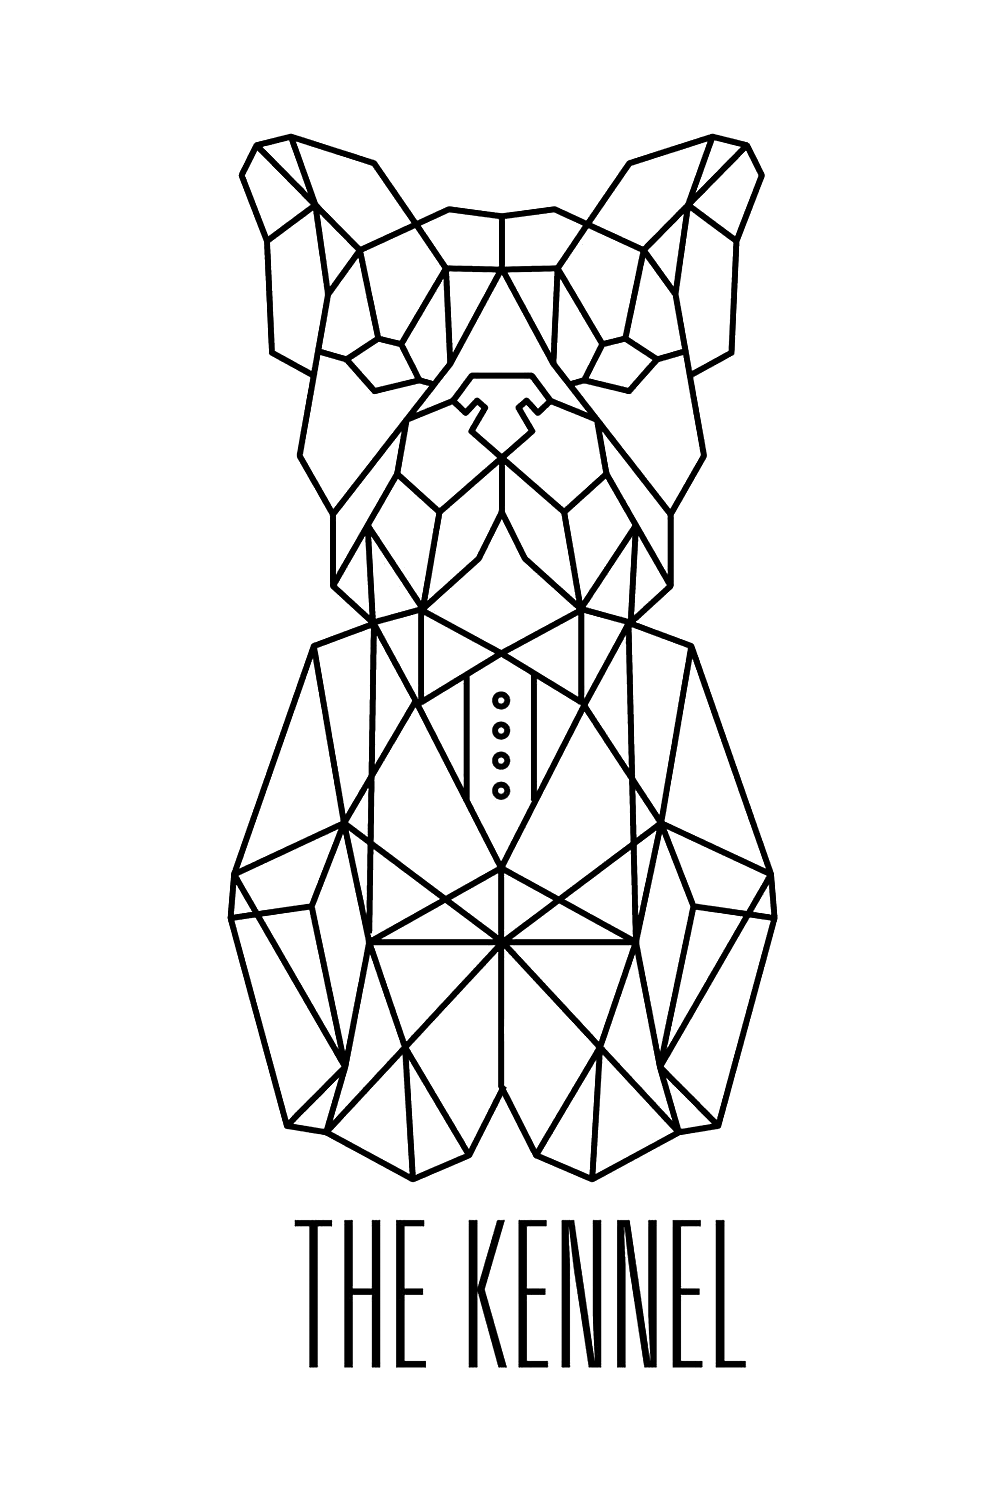 The Kennel Music vertical logo